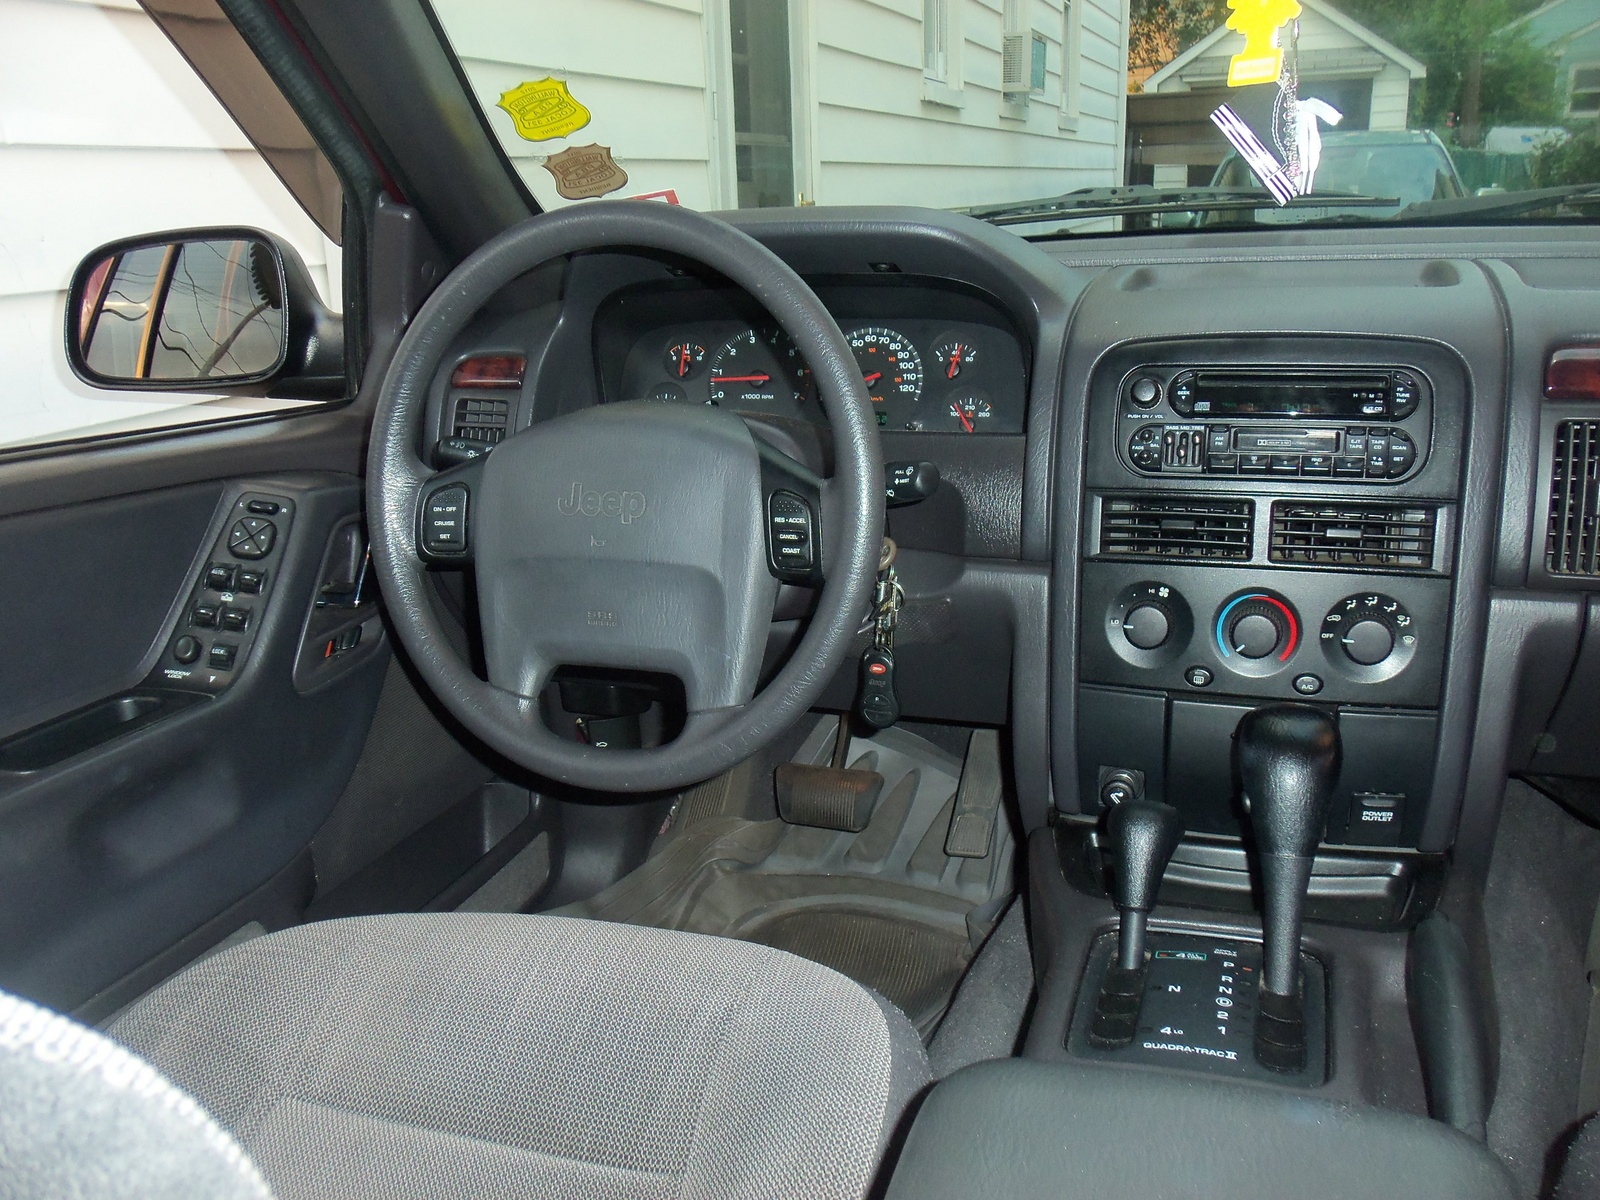 ... 2000 Jeep Grand Cherokee Interior Pictures Cargurus For Interieur Jeep  Grand Cherokee 2000 ...